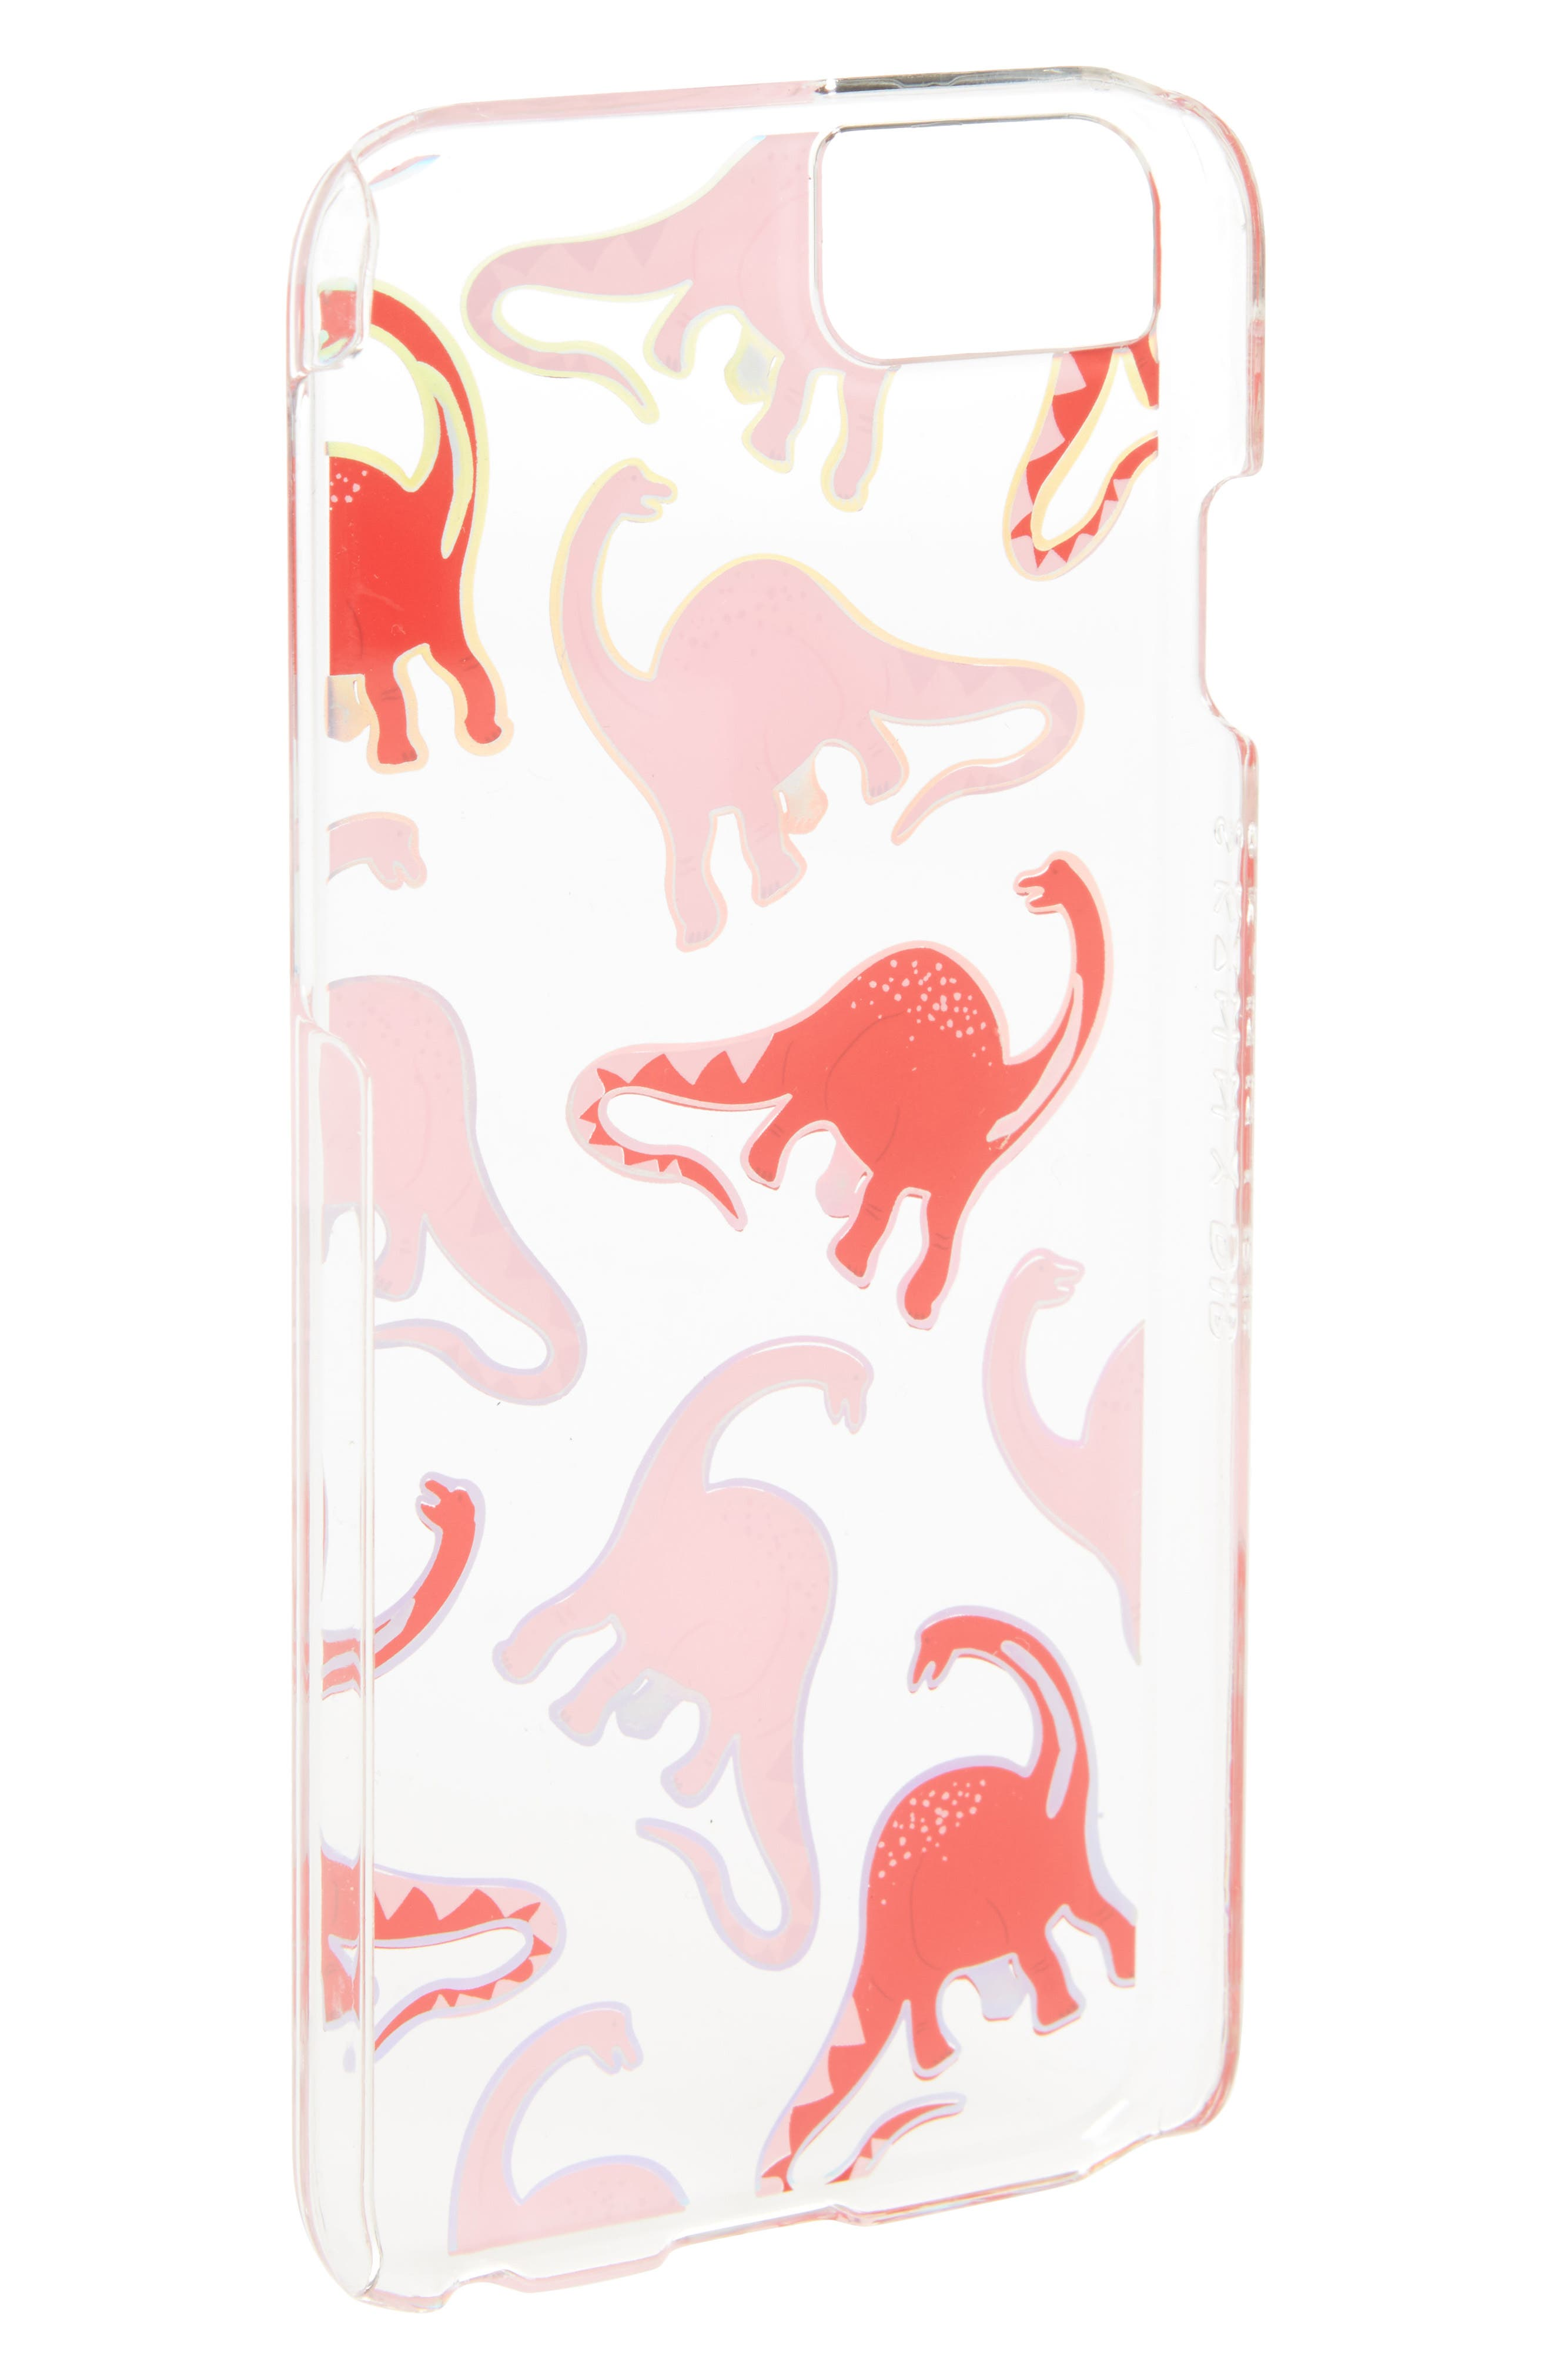 Skinny Dip Pink Dino iPhone 6/6s/7/8 or 6/6s/7/8 Plus Case,                             Alternate thumbnail 2, color,                             650